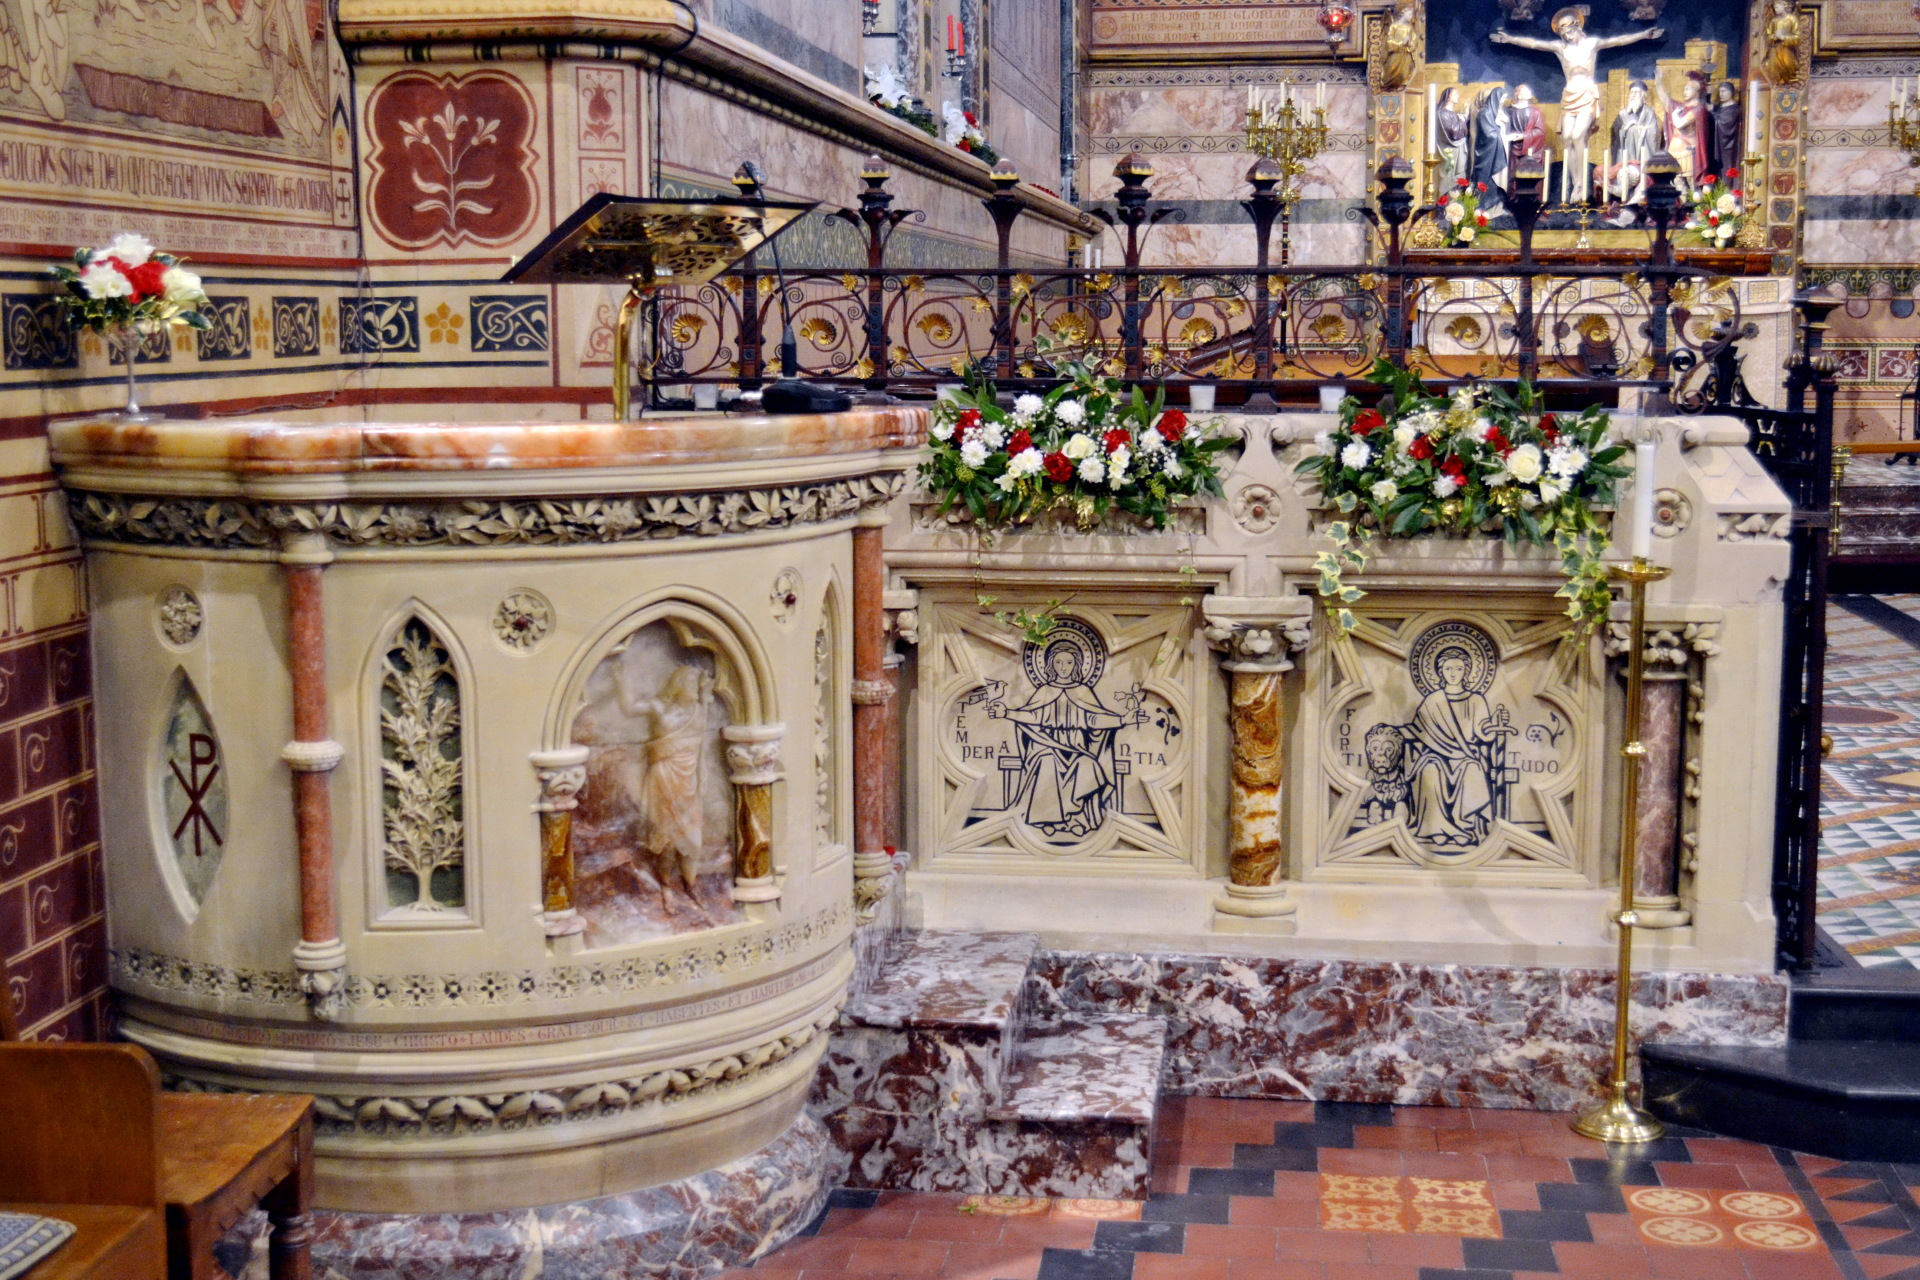 The pulpit and left side of screen